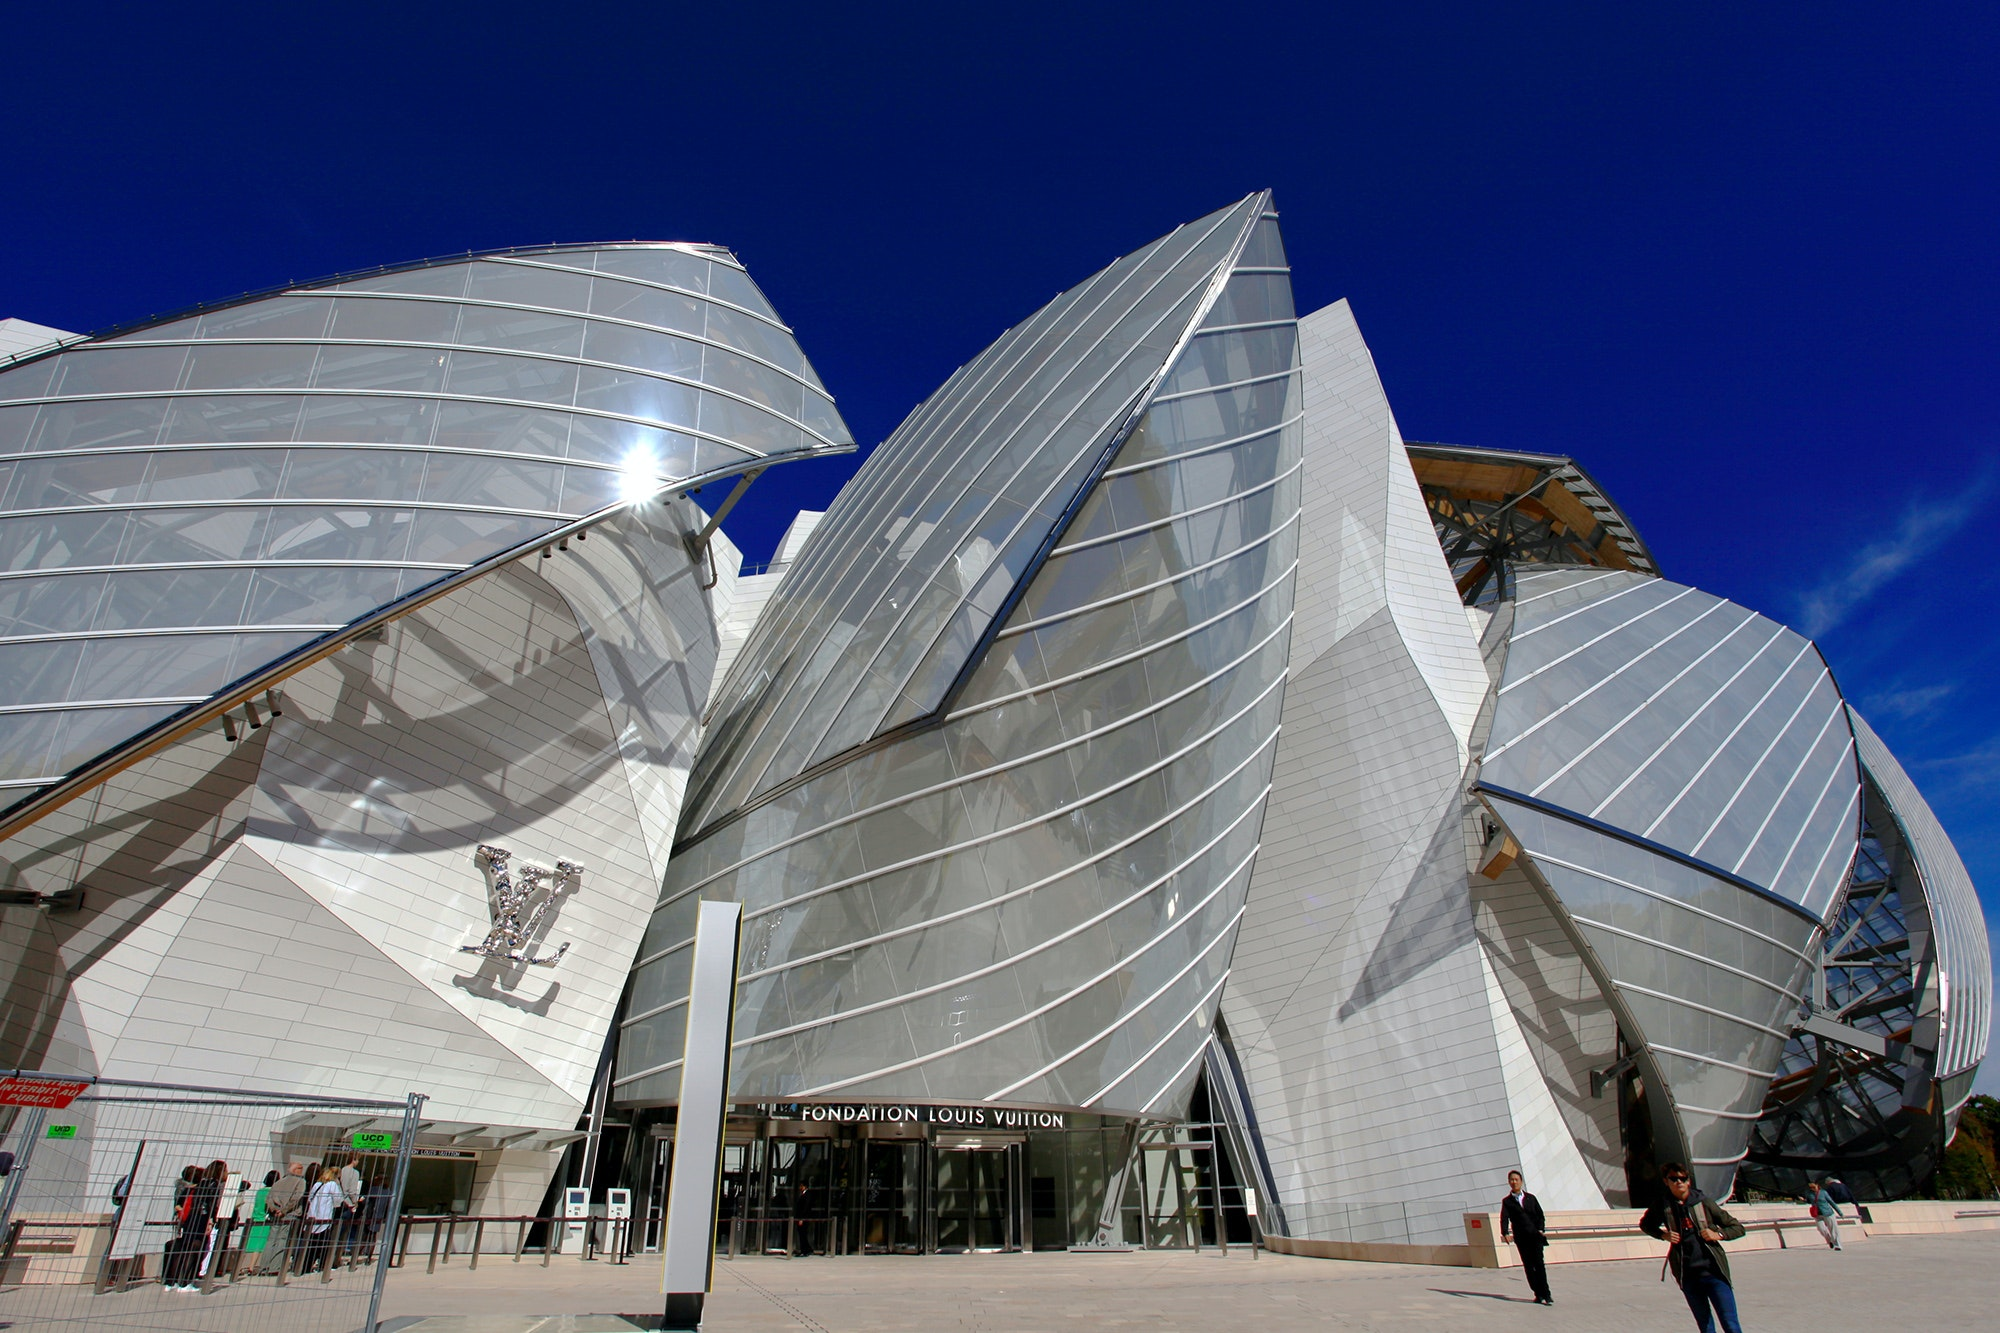 The Frank Gehry–designed Fondation Louis Vuitton is hosting two major exhibits featuring Jean-Michel Basquiat and Egon Schiele this fall.